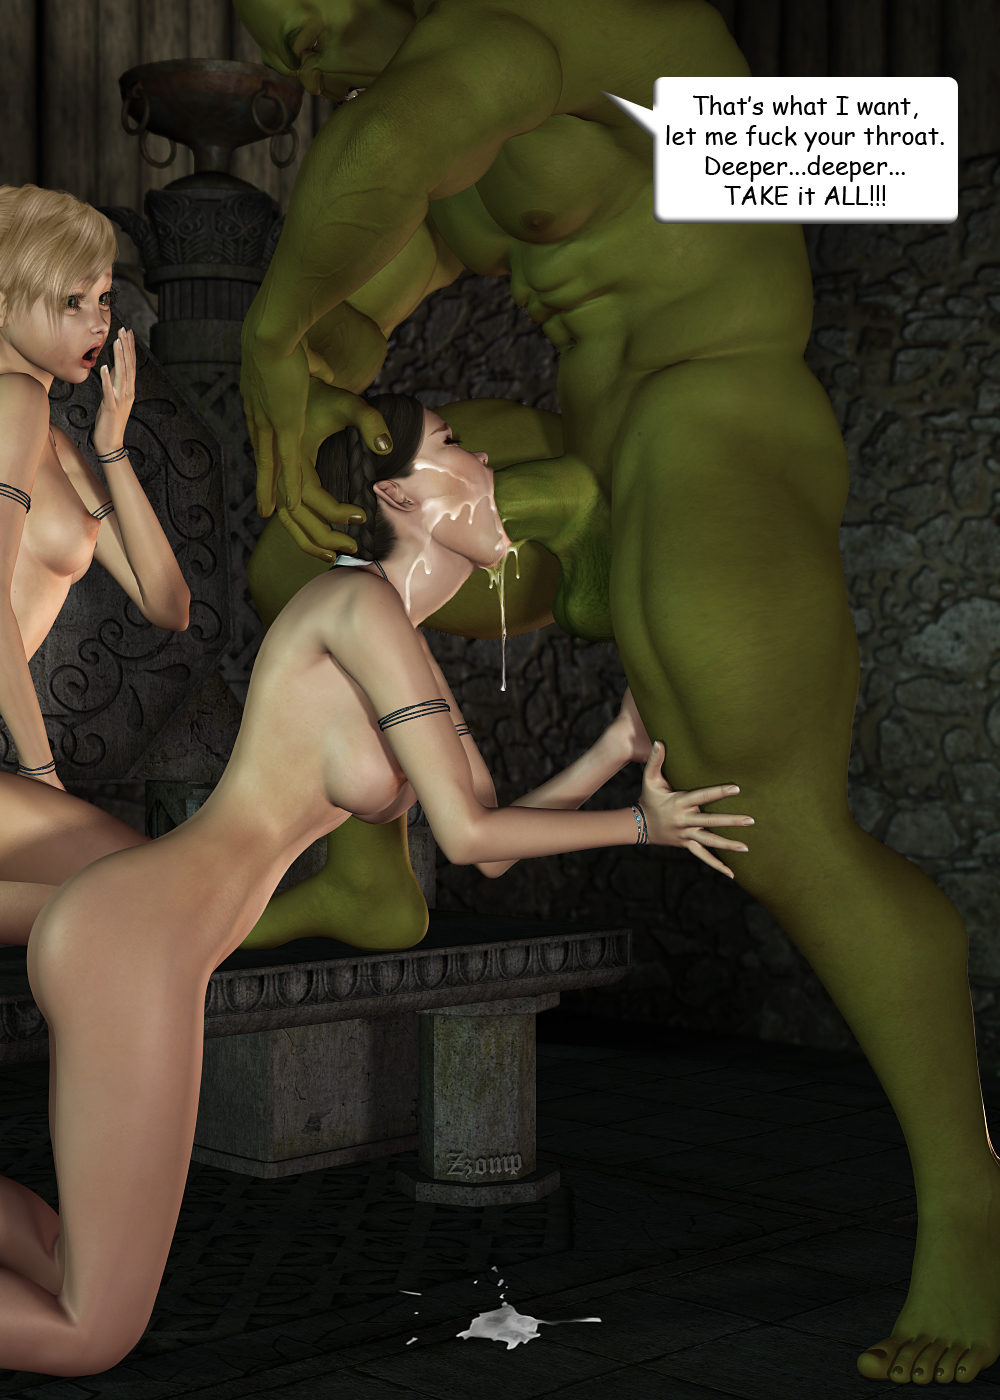 Hot monsters tgp sexy clips